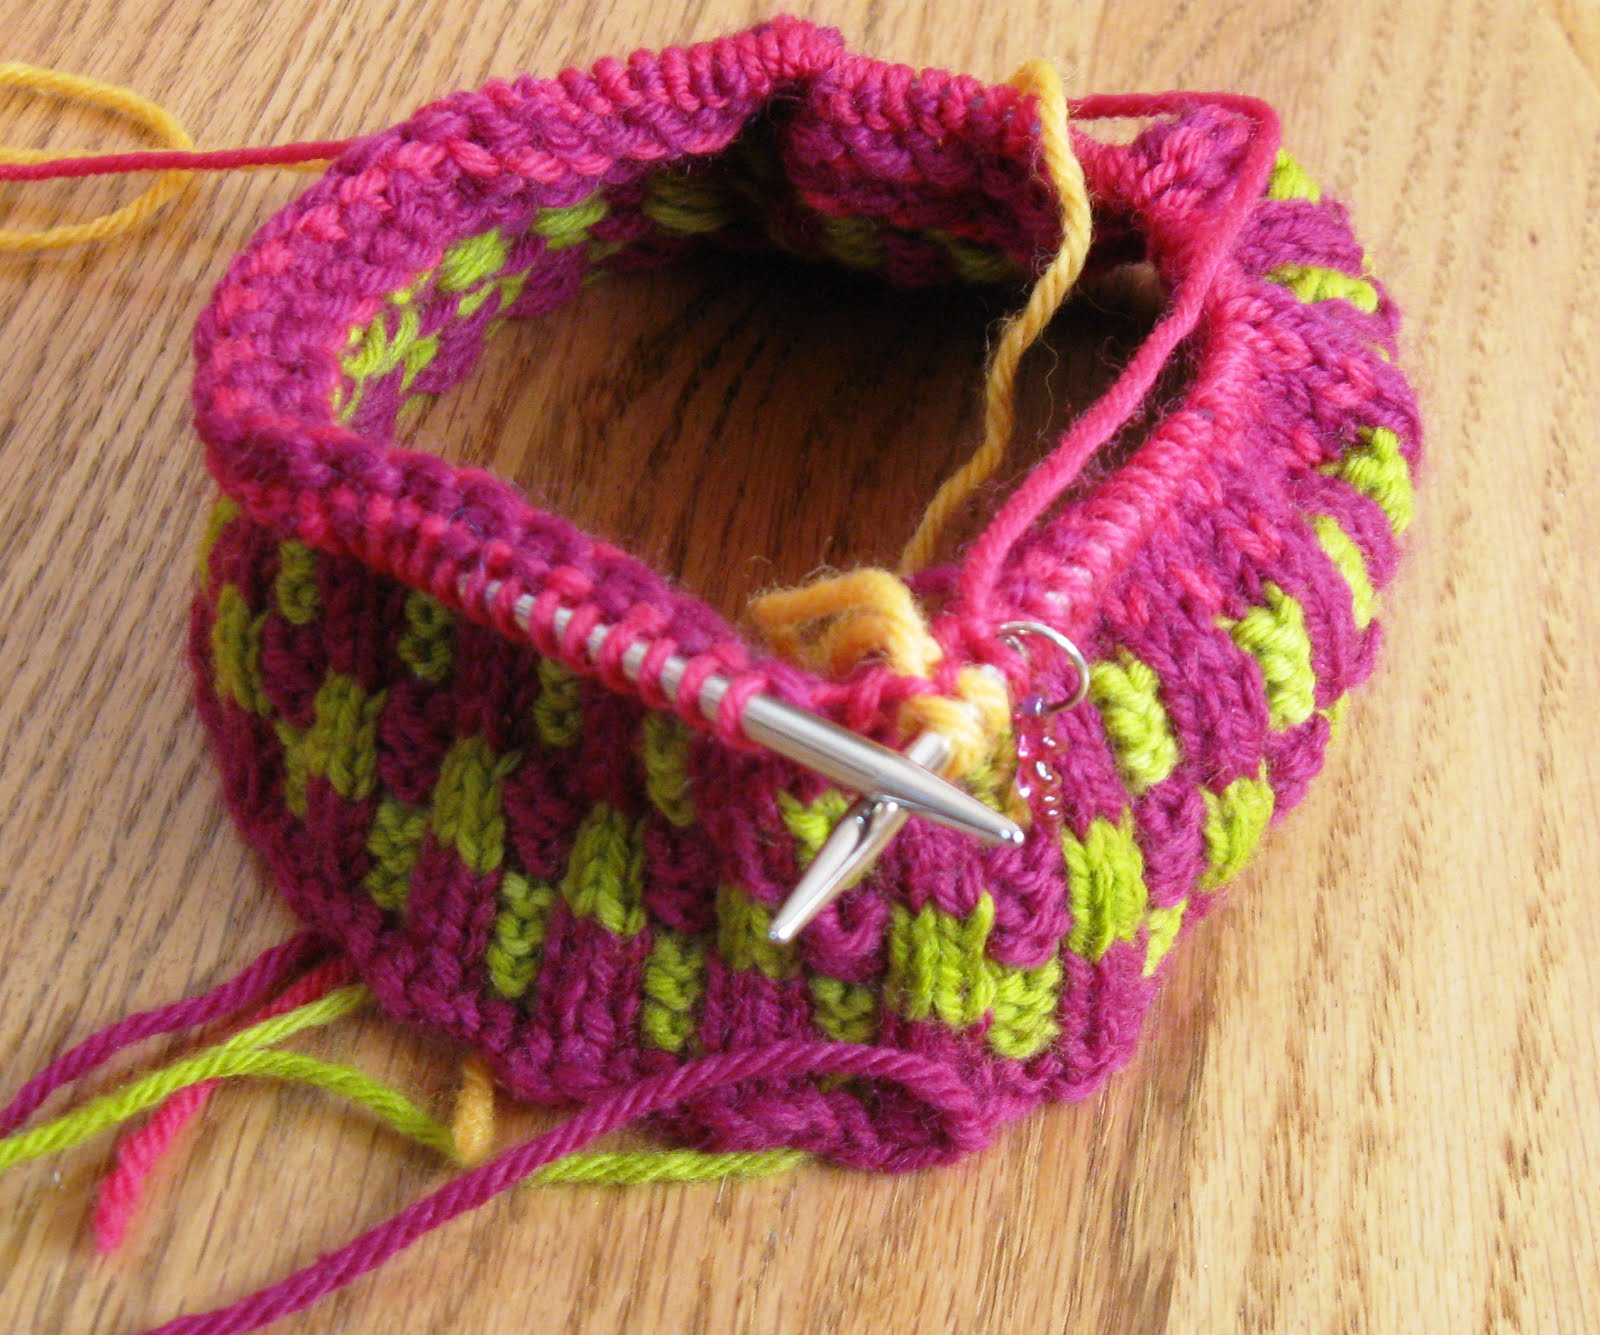 Knitting Patterns For Beginners Circular Needles : Kiwi Knits: About Knitting Needles